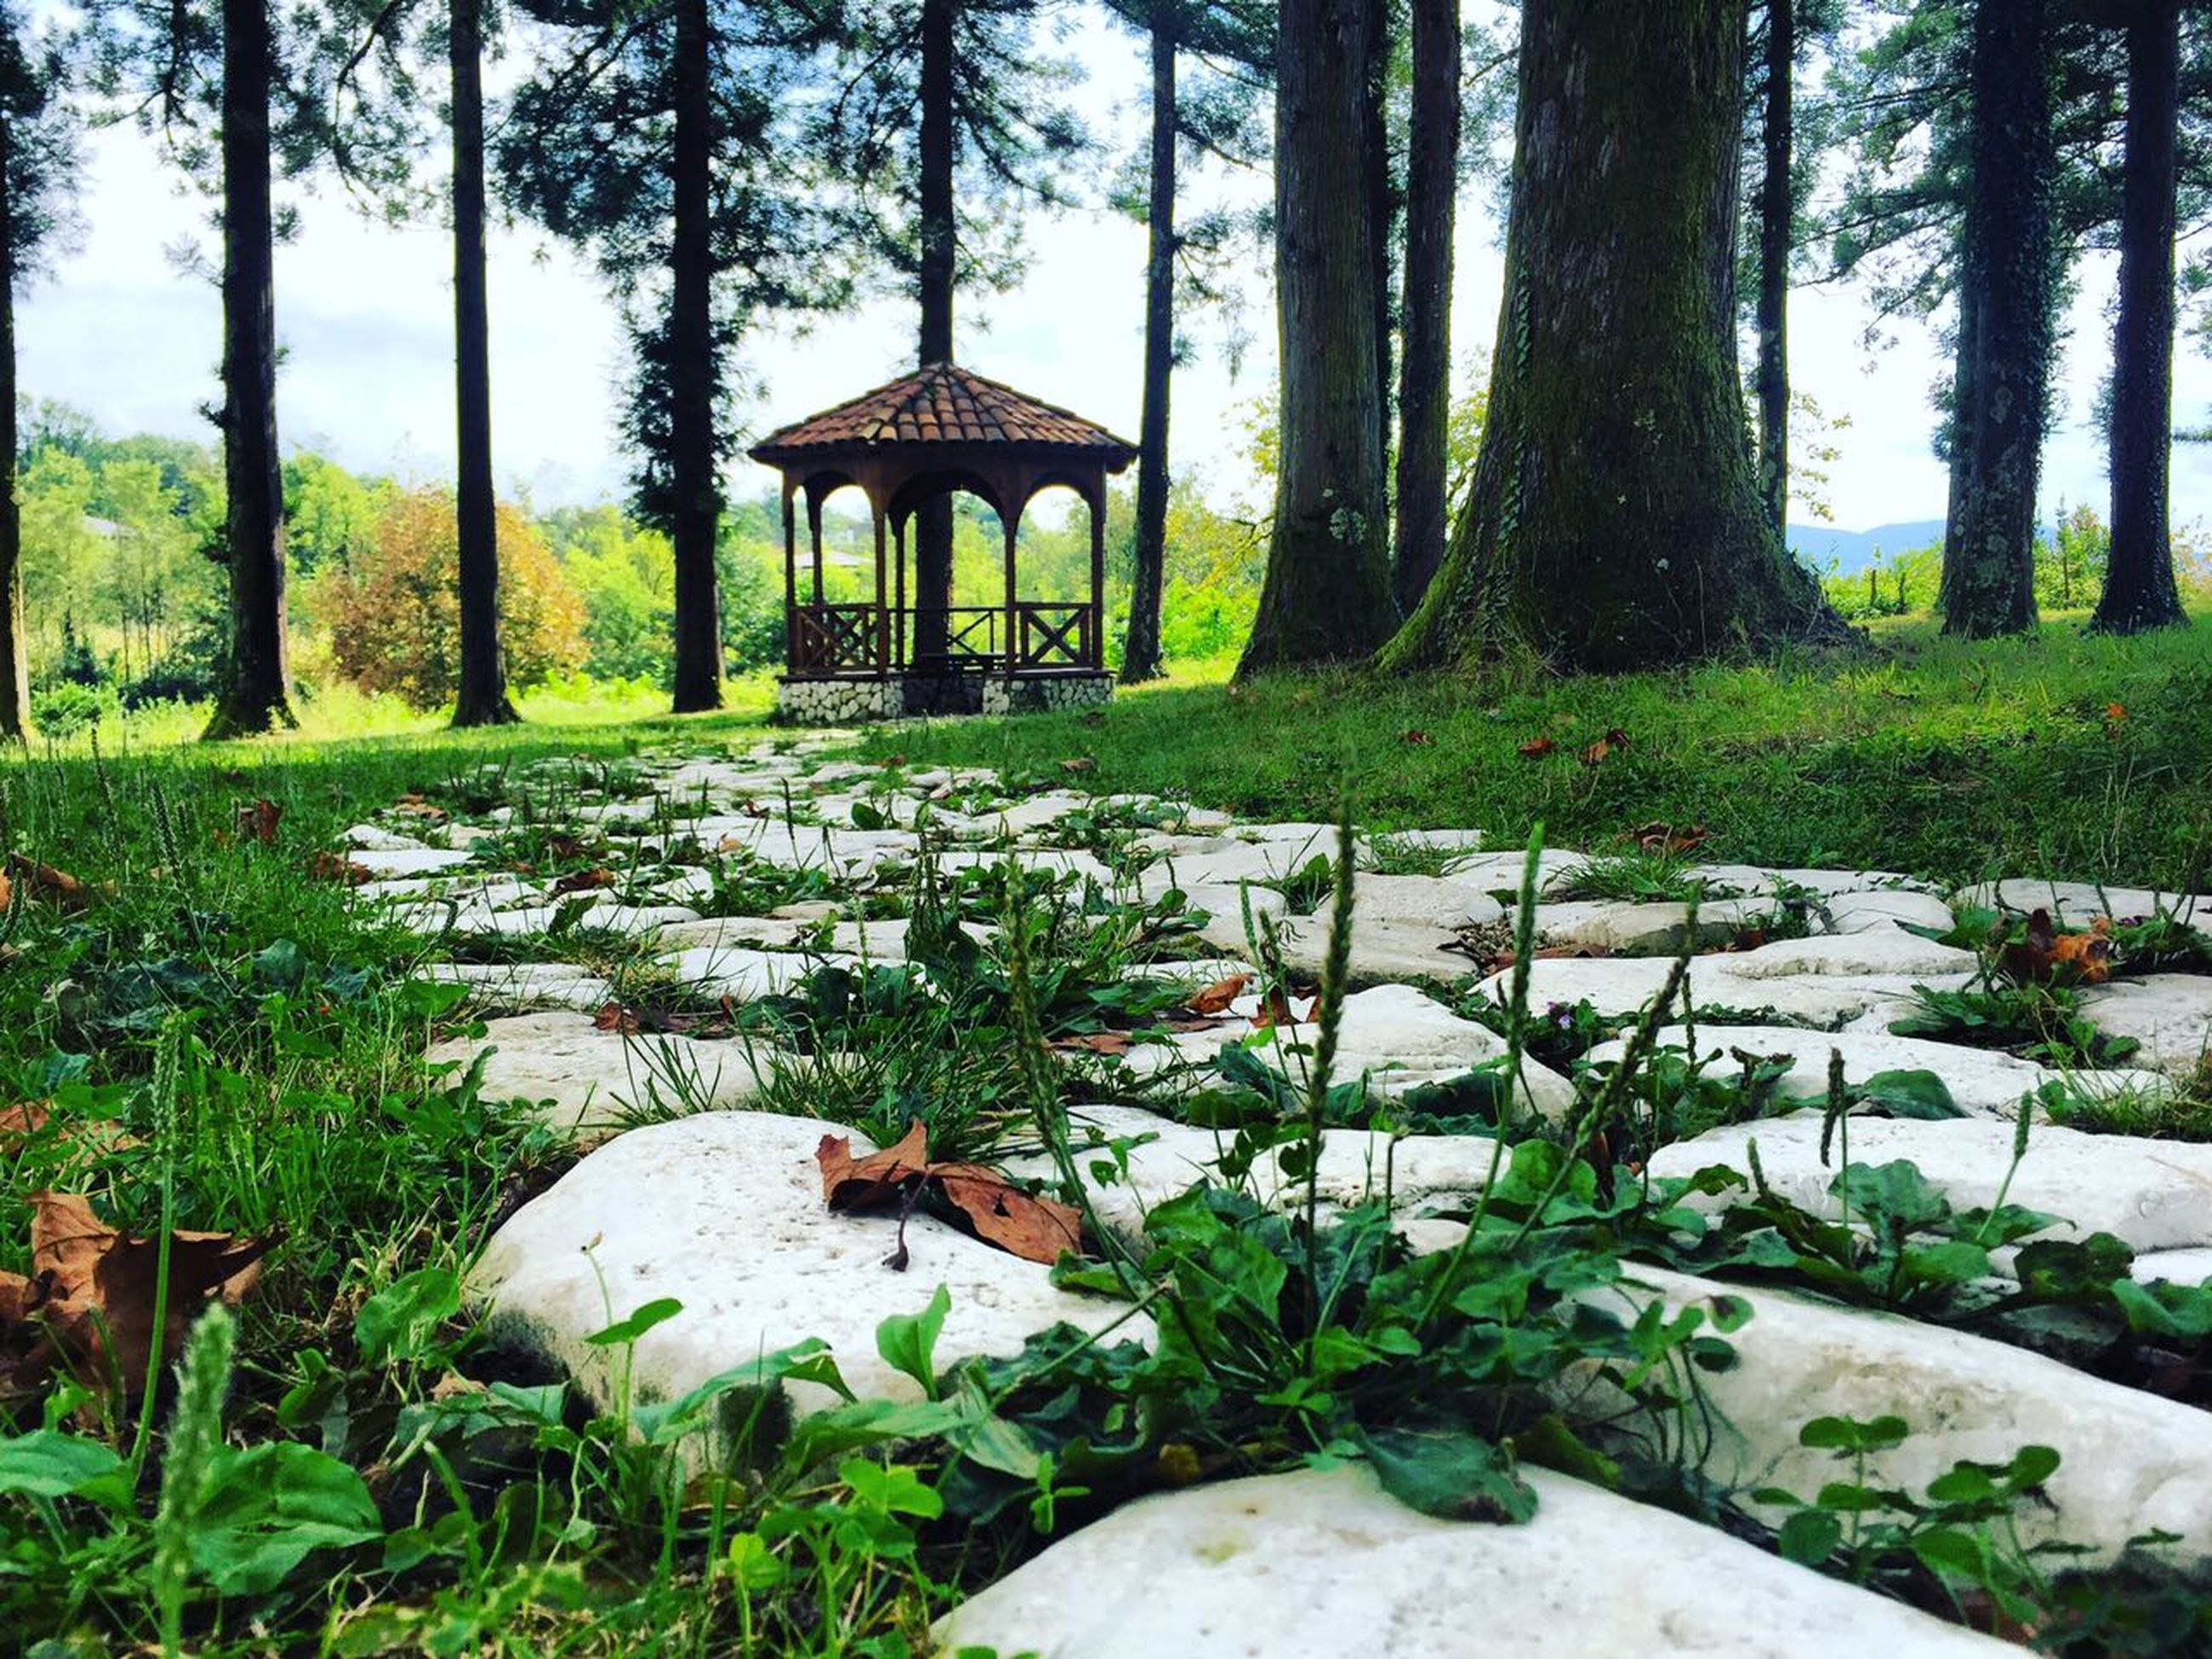 tranquility, tranquil scene, gazebo, grass, tree, built structure, park - man made space, scenics, nature, plant, tree trunk, green color, beauty in nature, growth, branch, footpath, garden, outdoors, solitude, day, no people, culture, surface level, remote, non-urban scene, formal garden, countryside, park, sunshade